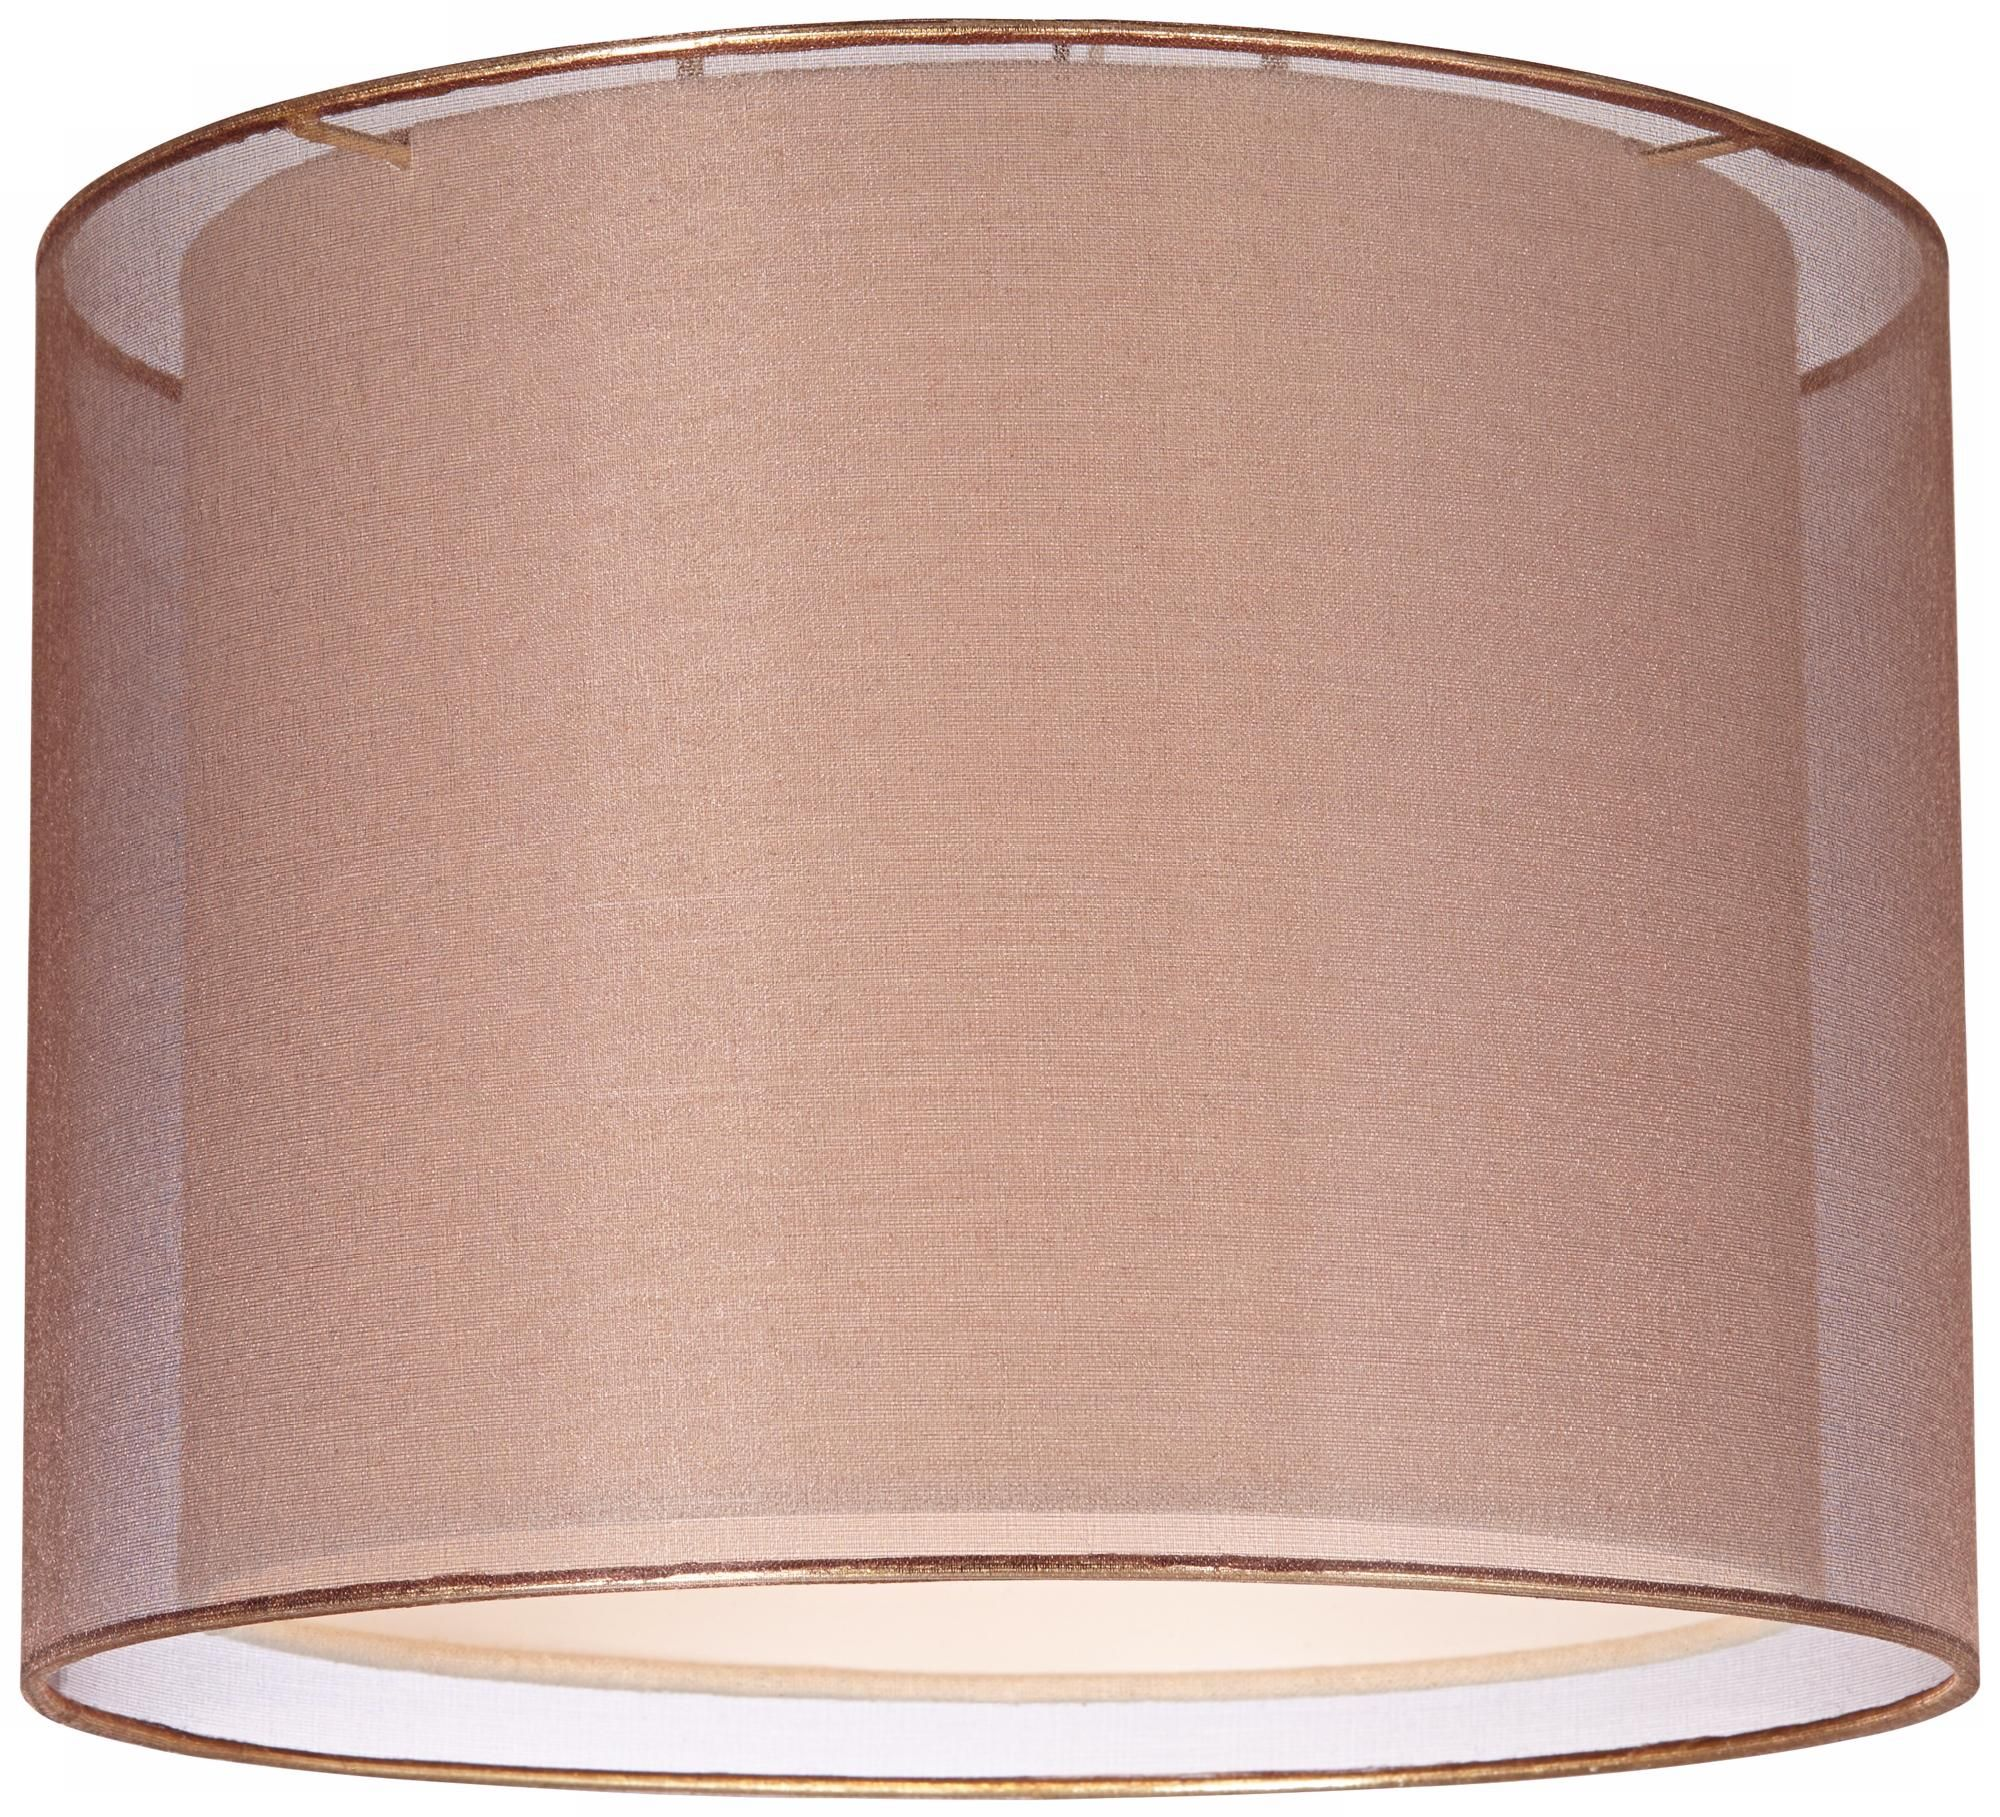 Sheer bronze double lamp shade 12x12x9 spider style 6r952 sheer bronze double lamp shade 12x12x9 spider aloadofball Gallery